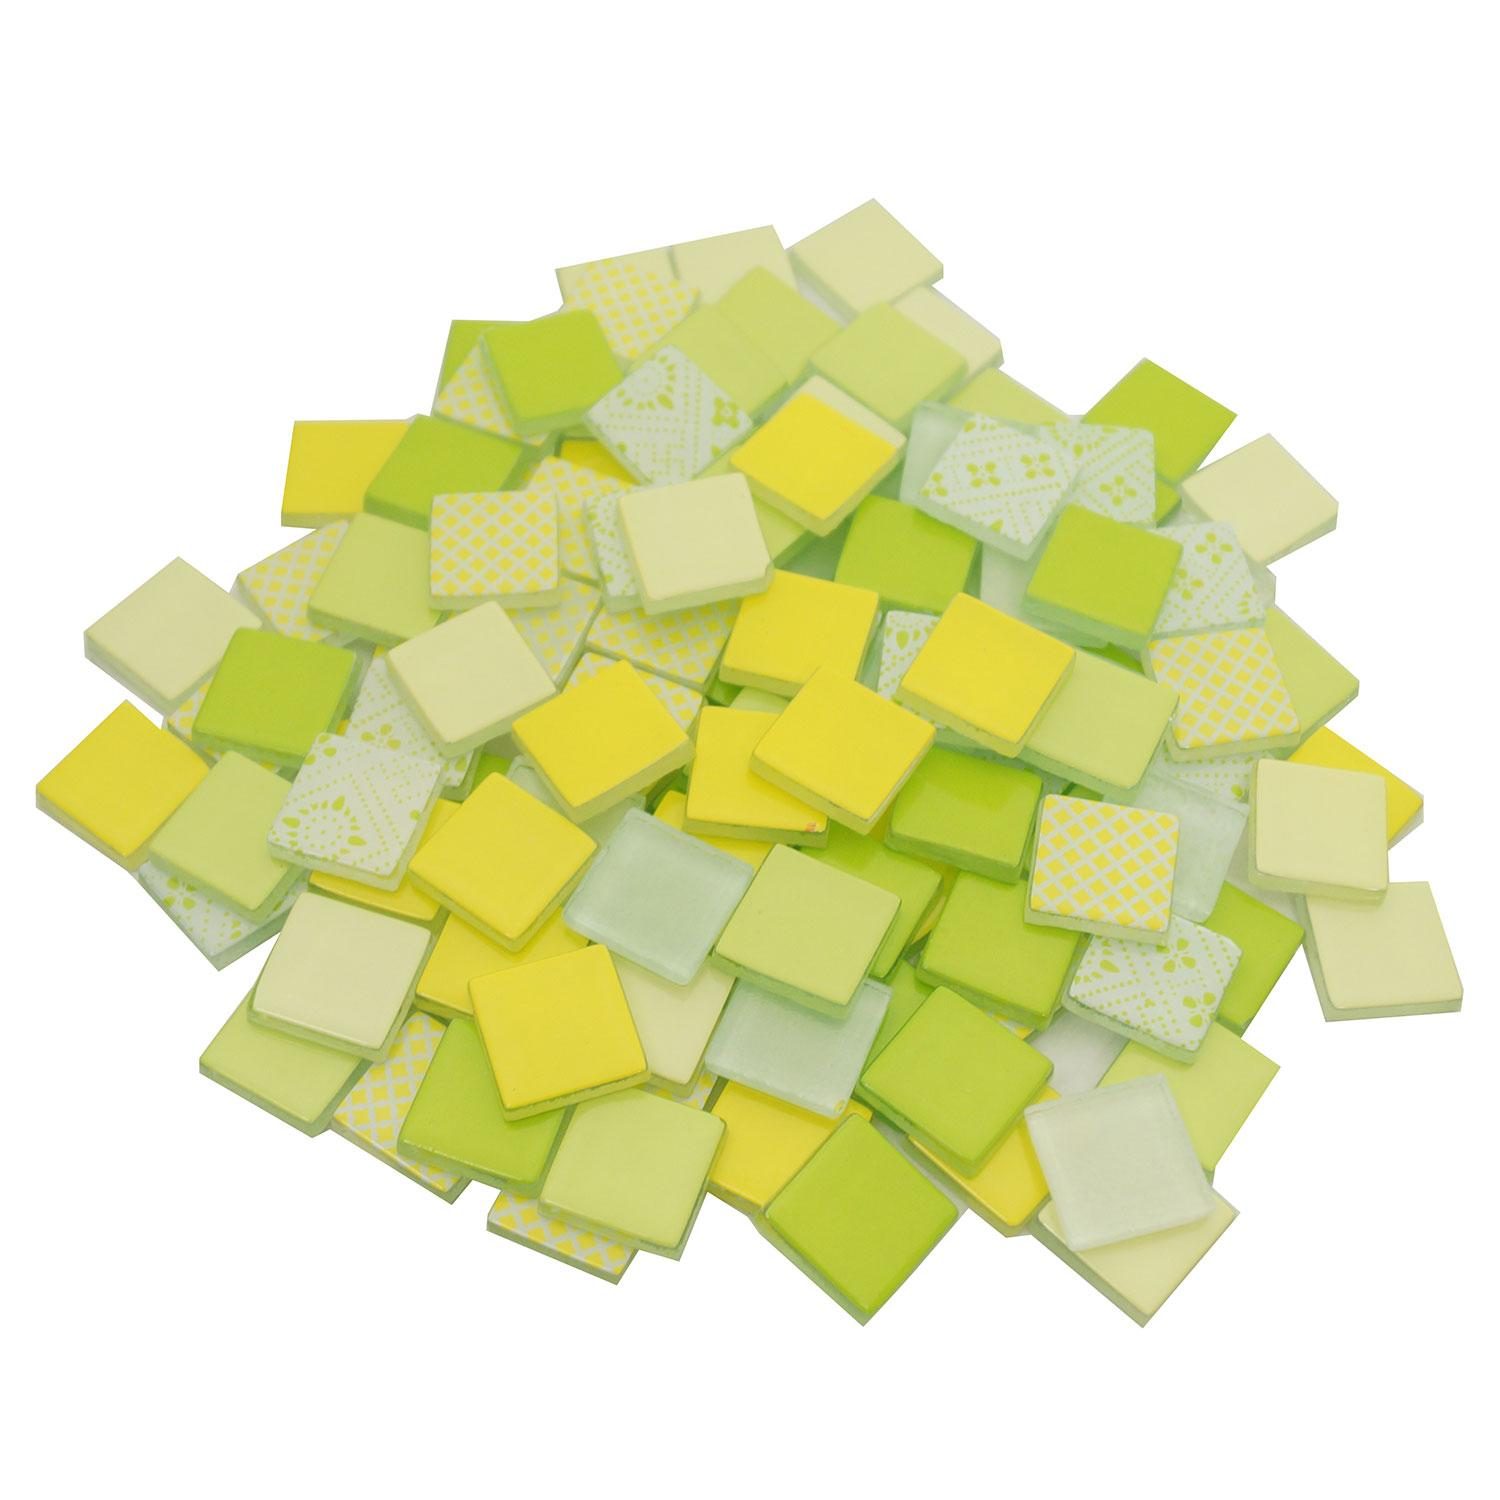 3/4 Lemon and Lime Patchwork Glass Tile Assortment - 1 lb